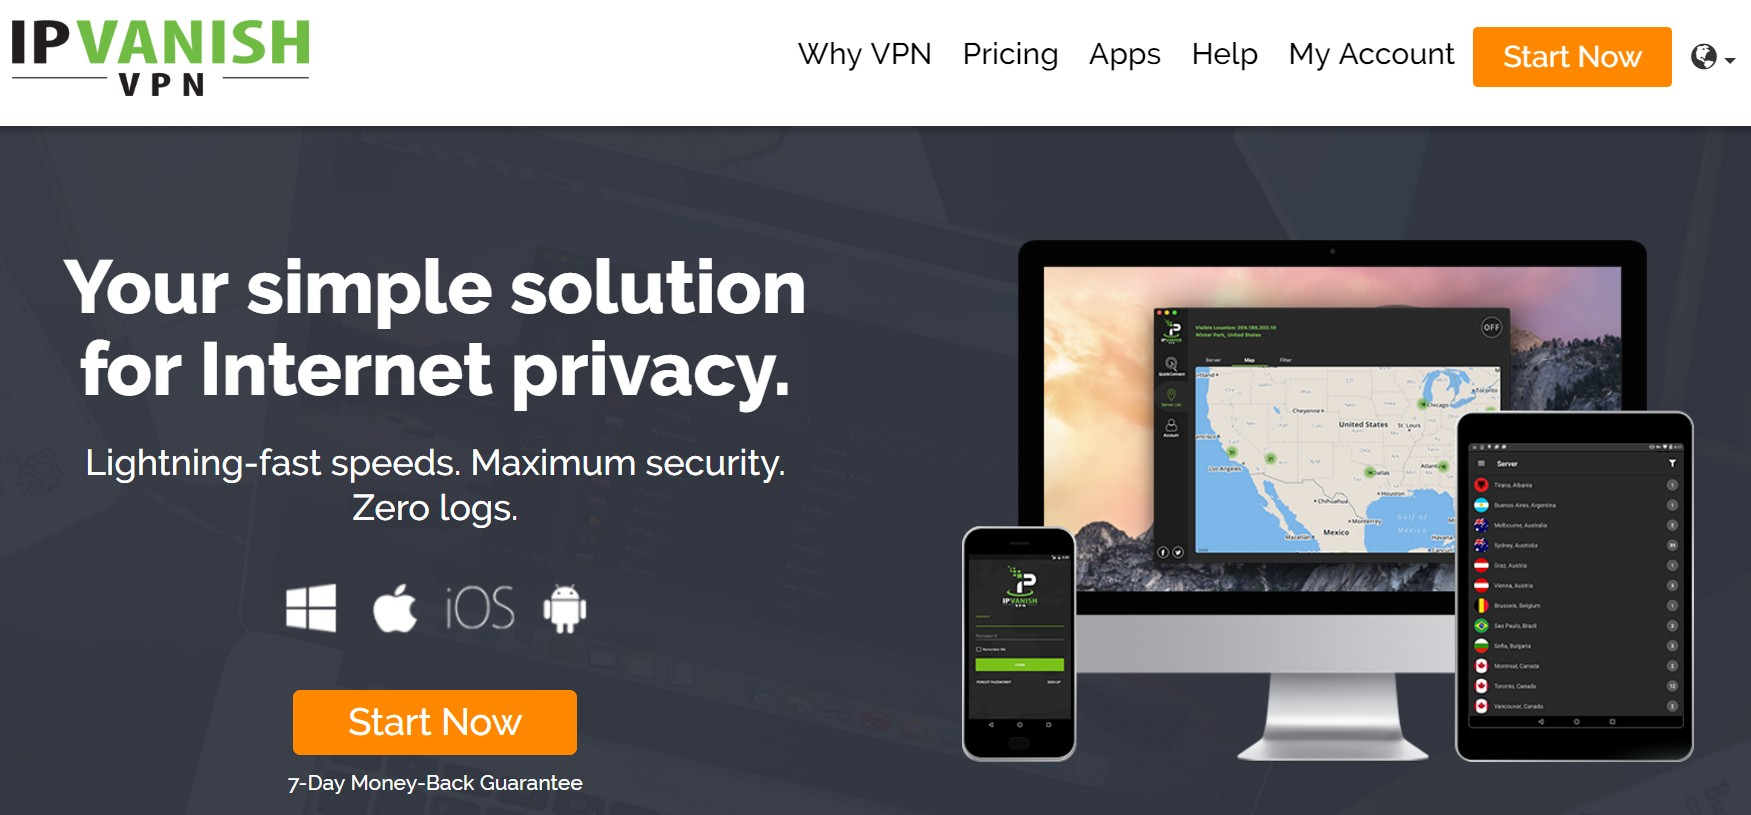 IP Vanish VPN Home Page - Best VPN no logs